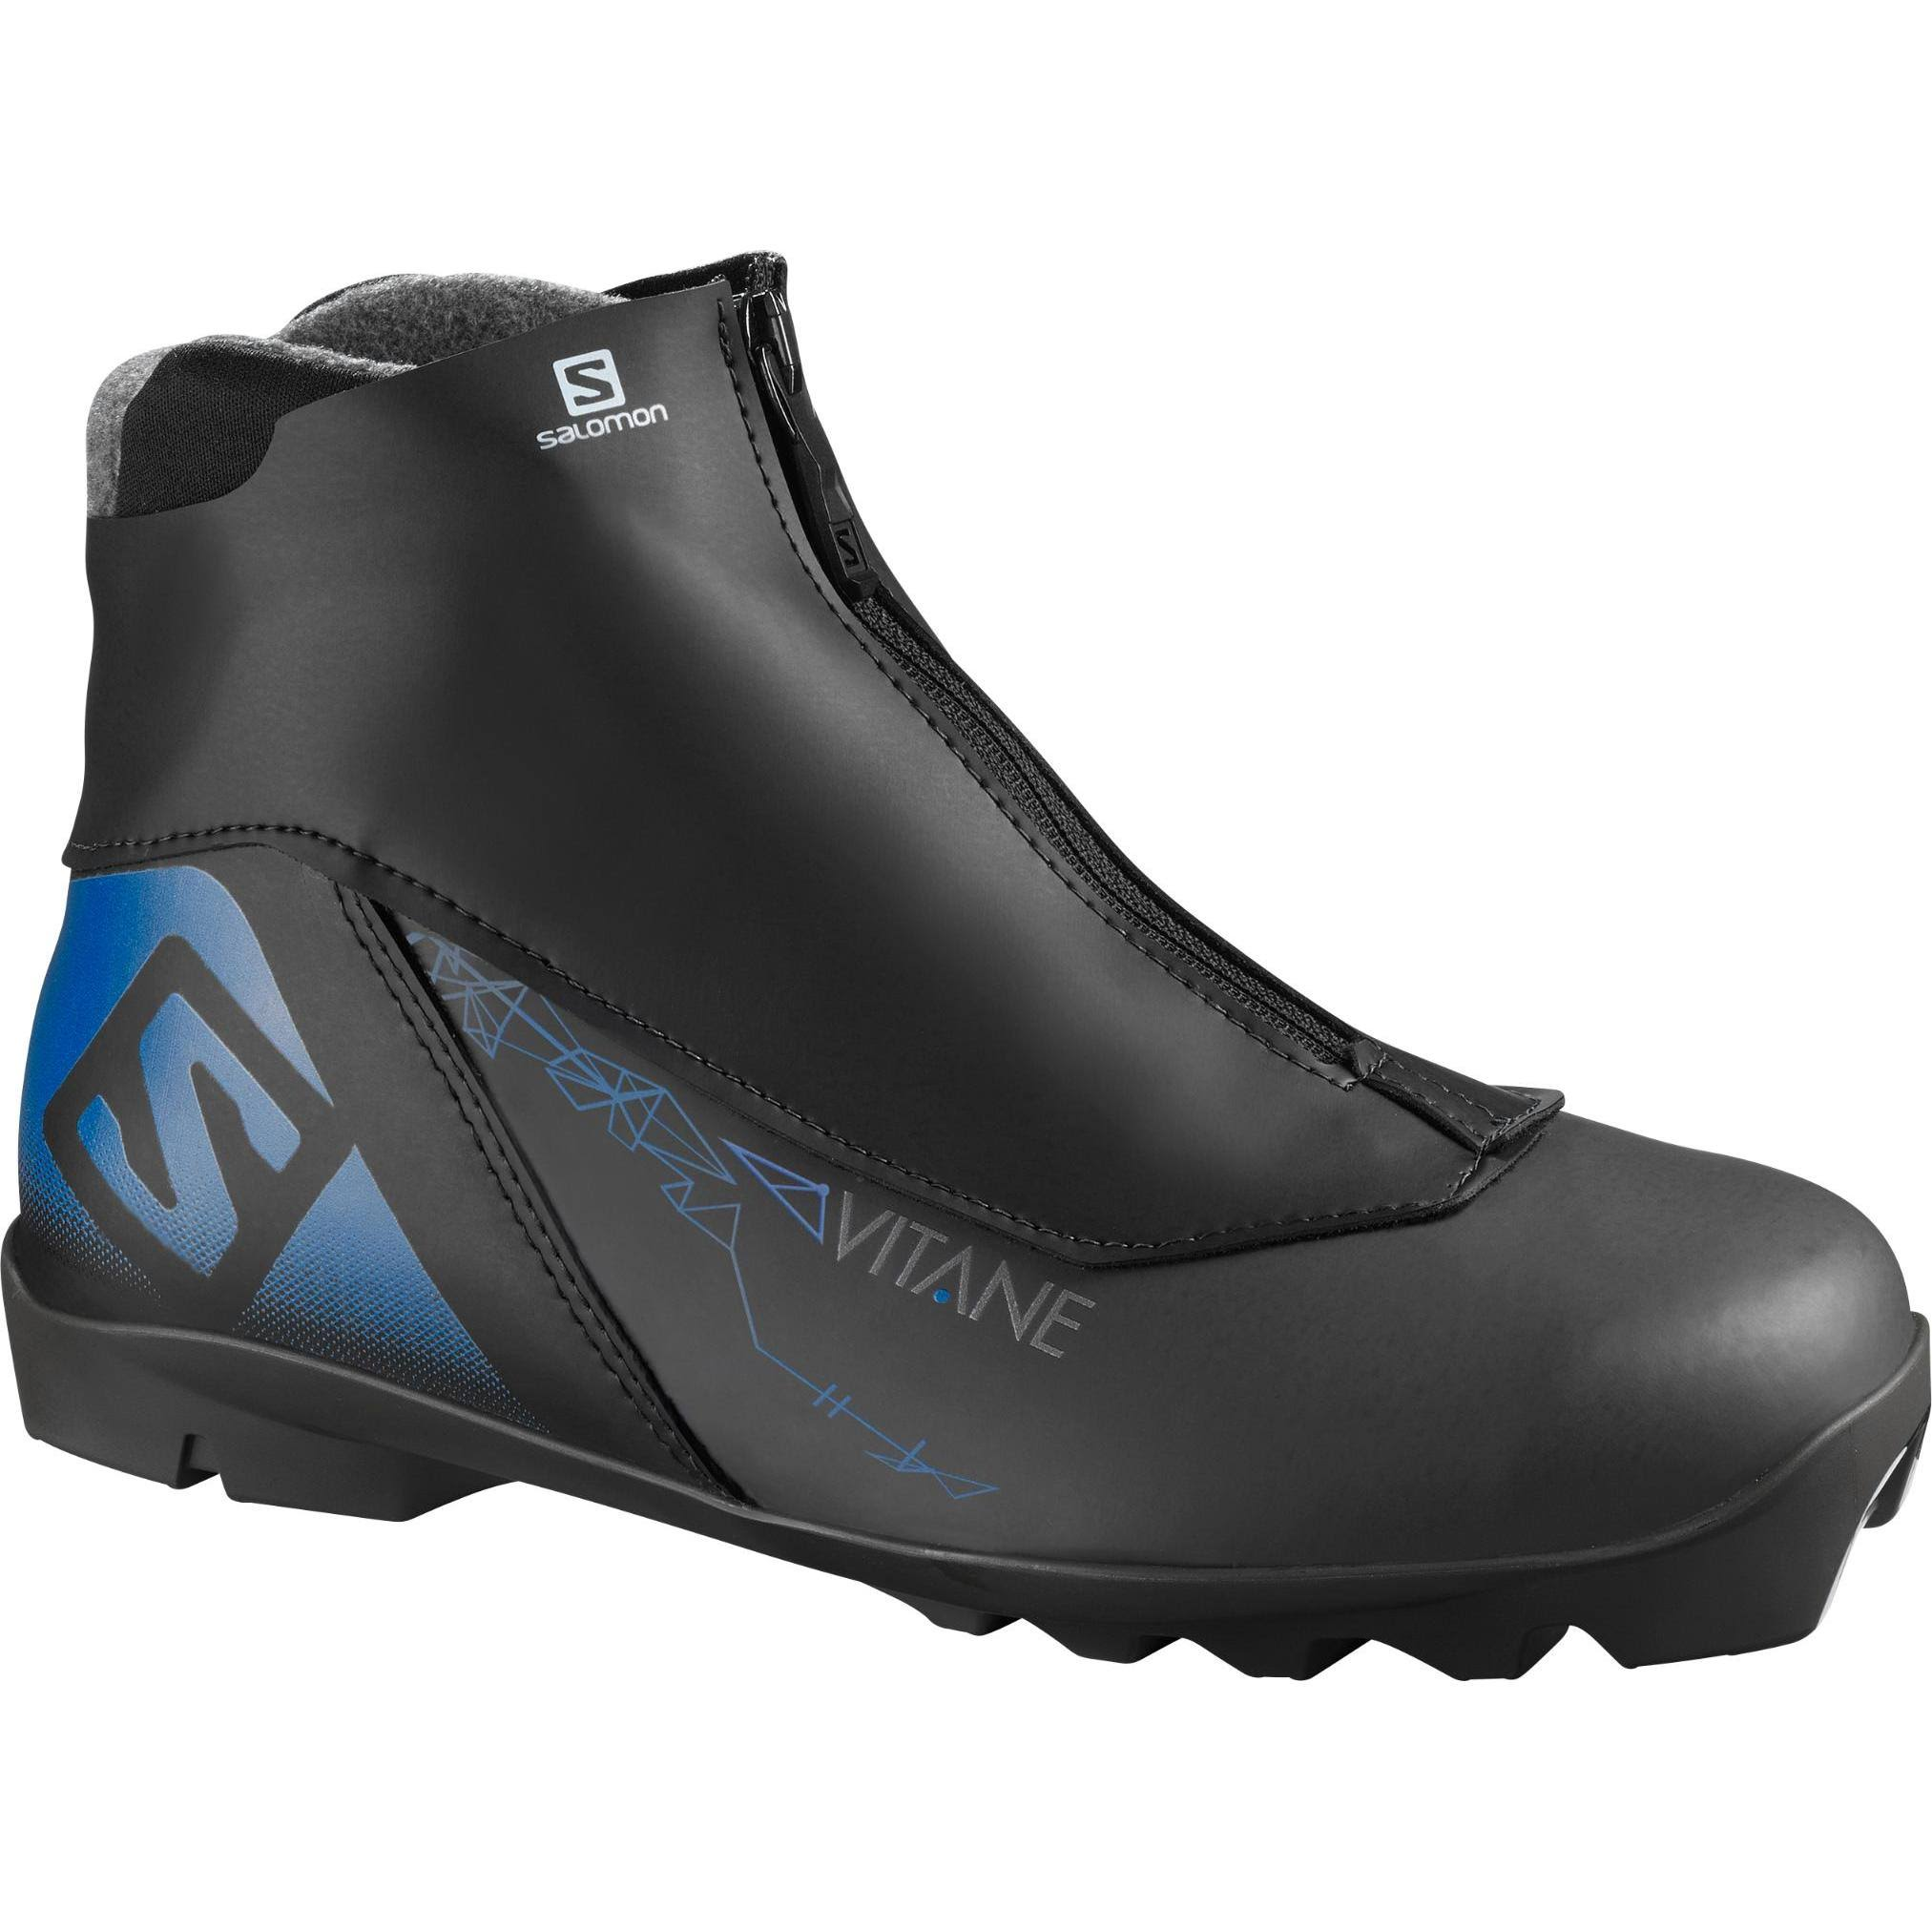 Salomon - Vitane Prolink Boot - 7